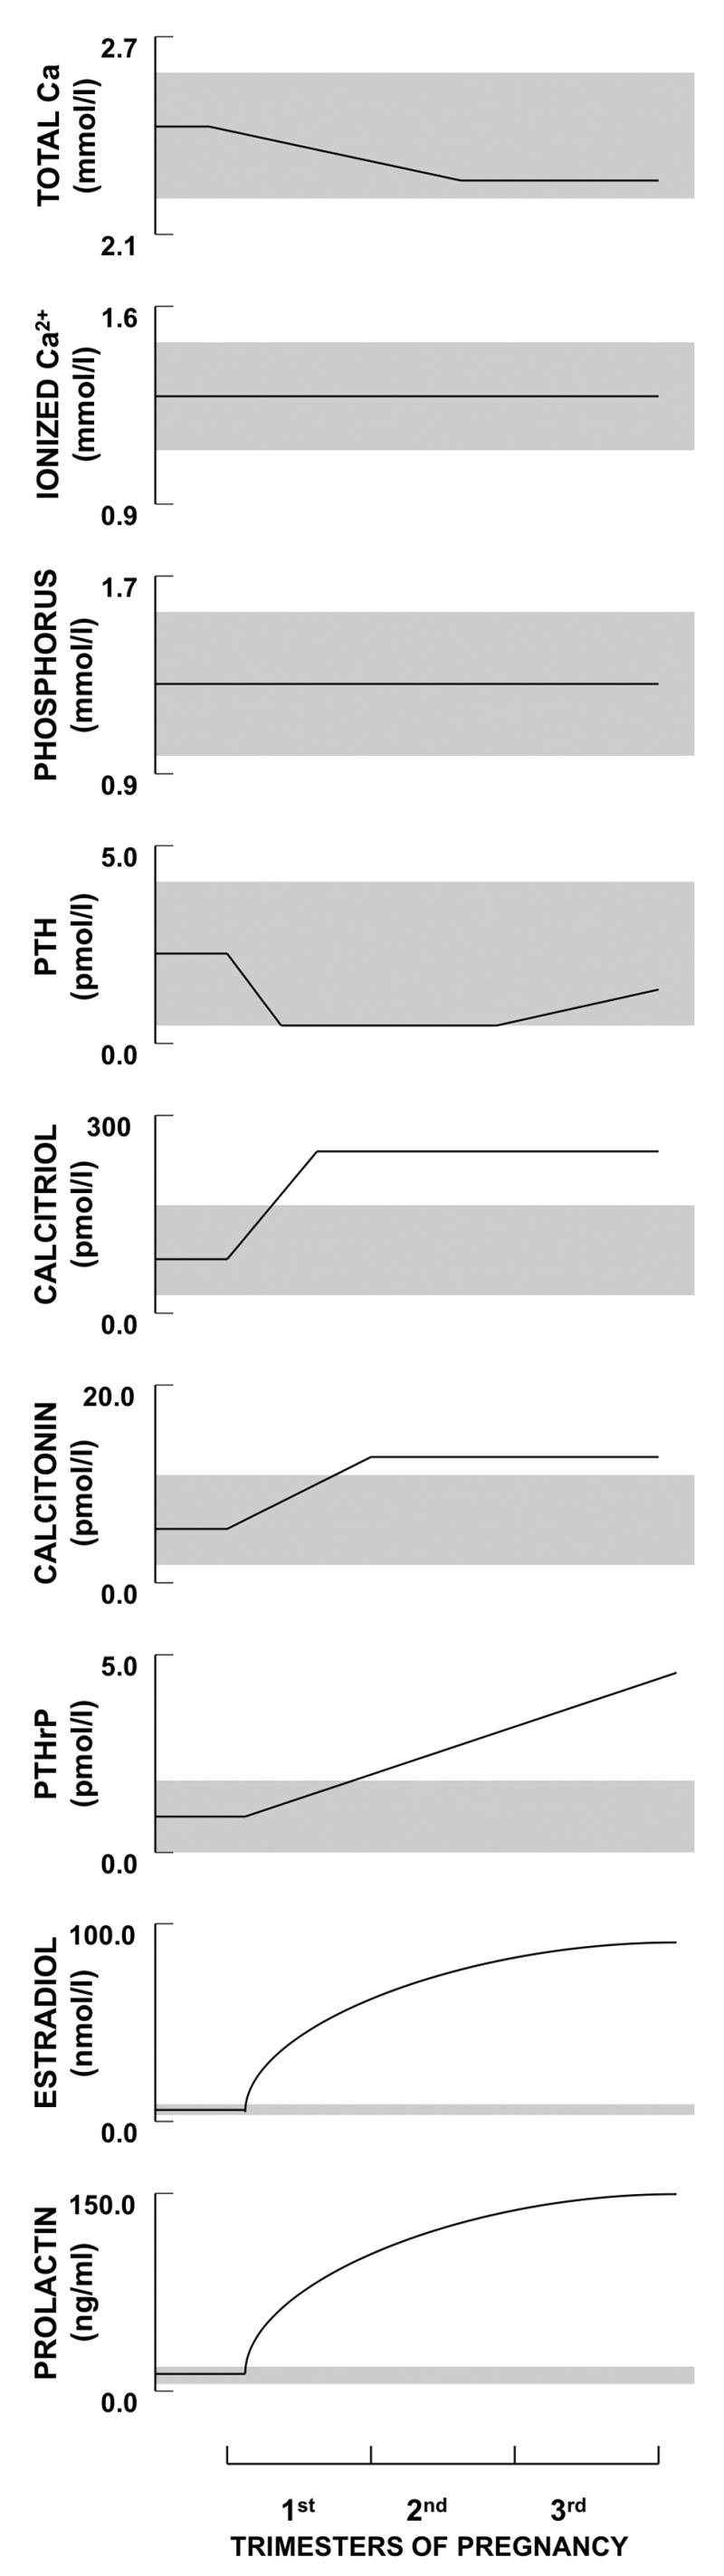 hight resolution of figure 2 schematic illustration of the longitudinal changes in calcium phosphate and